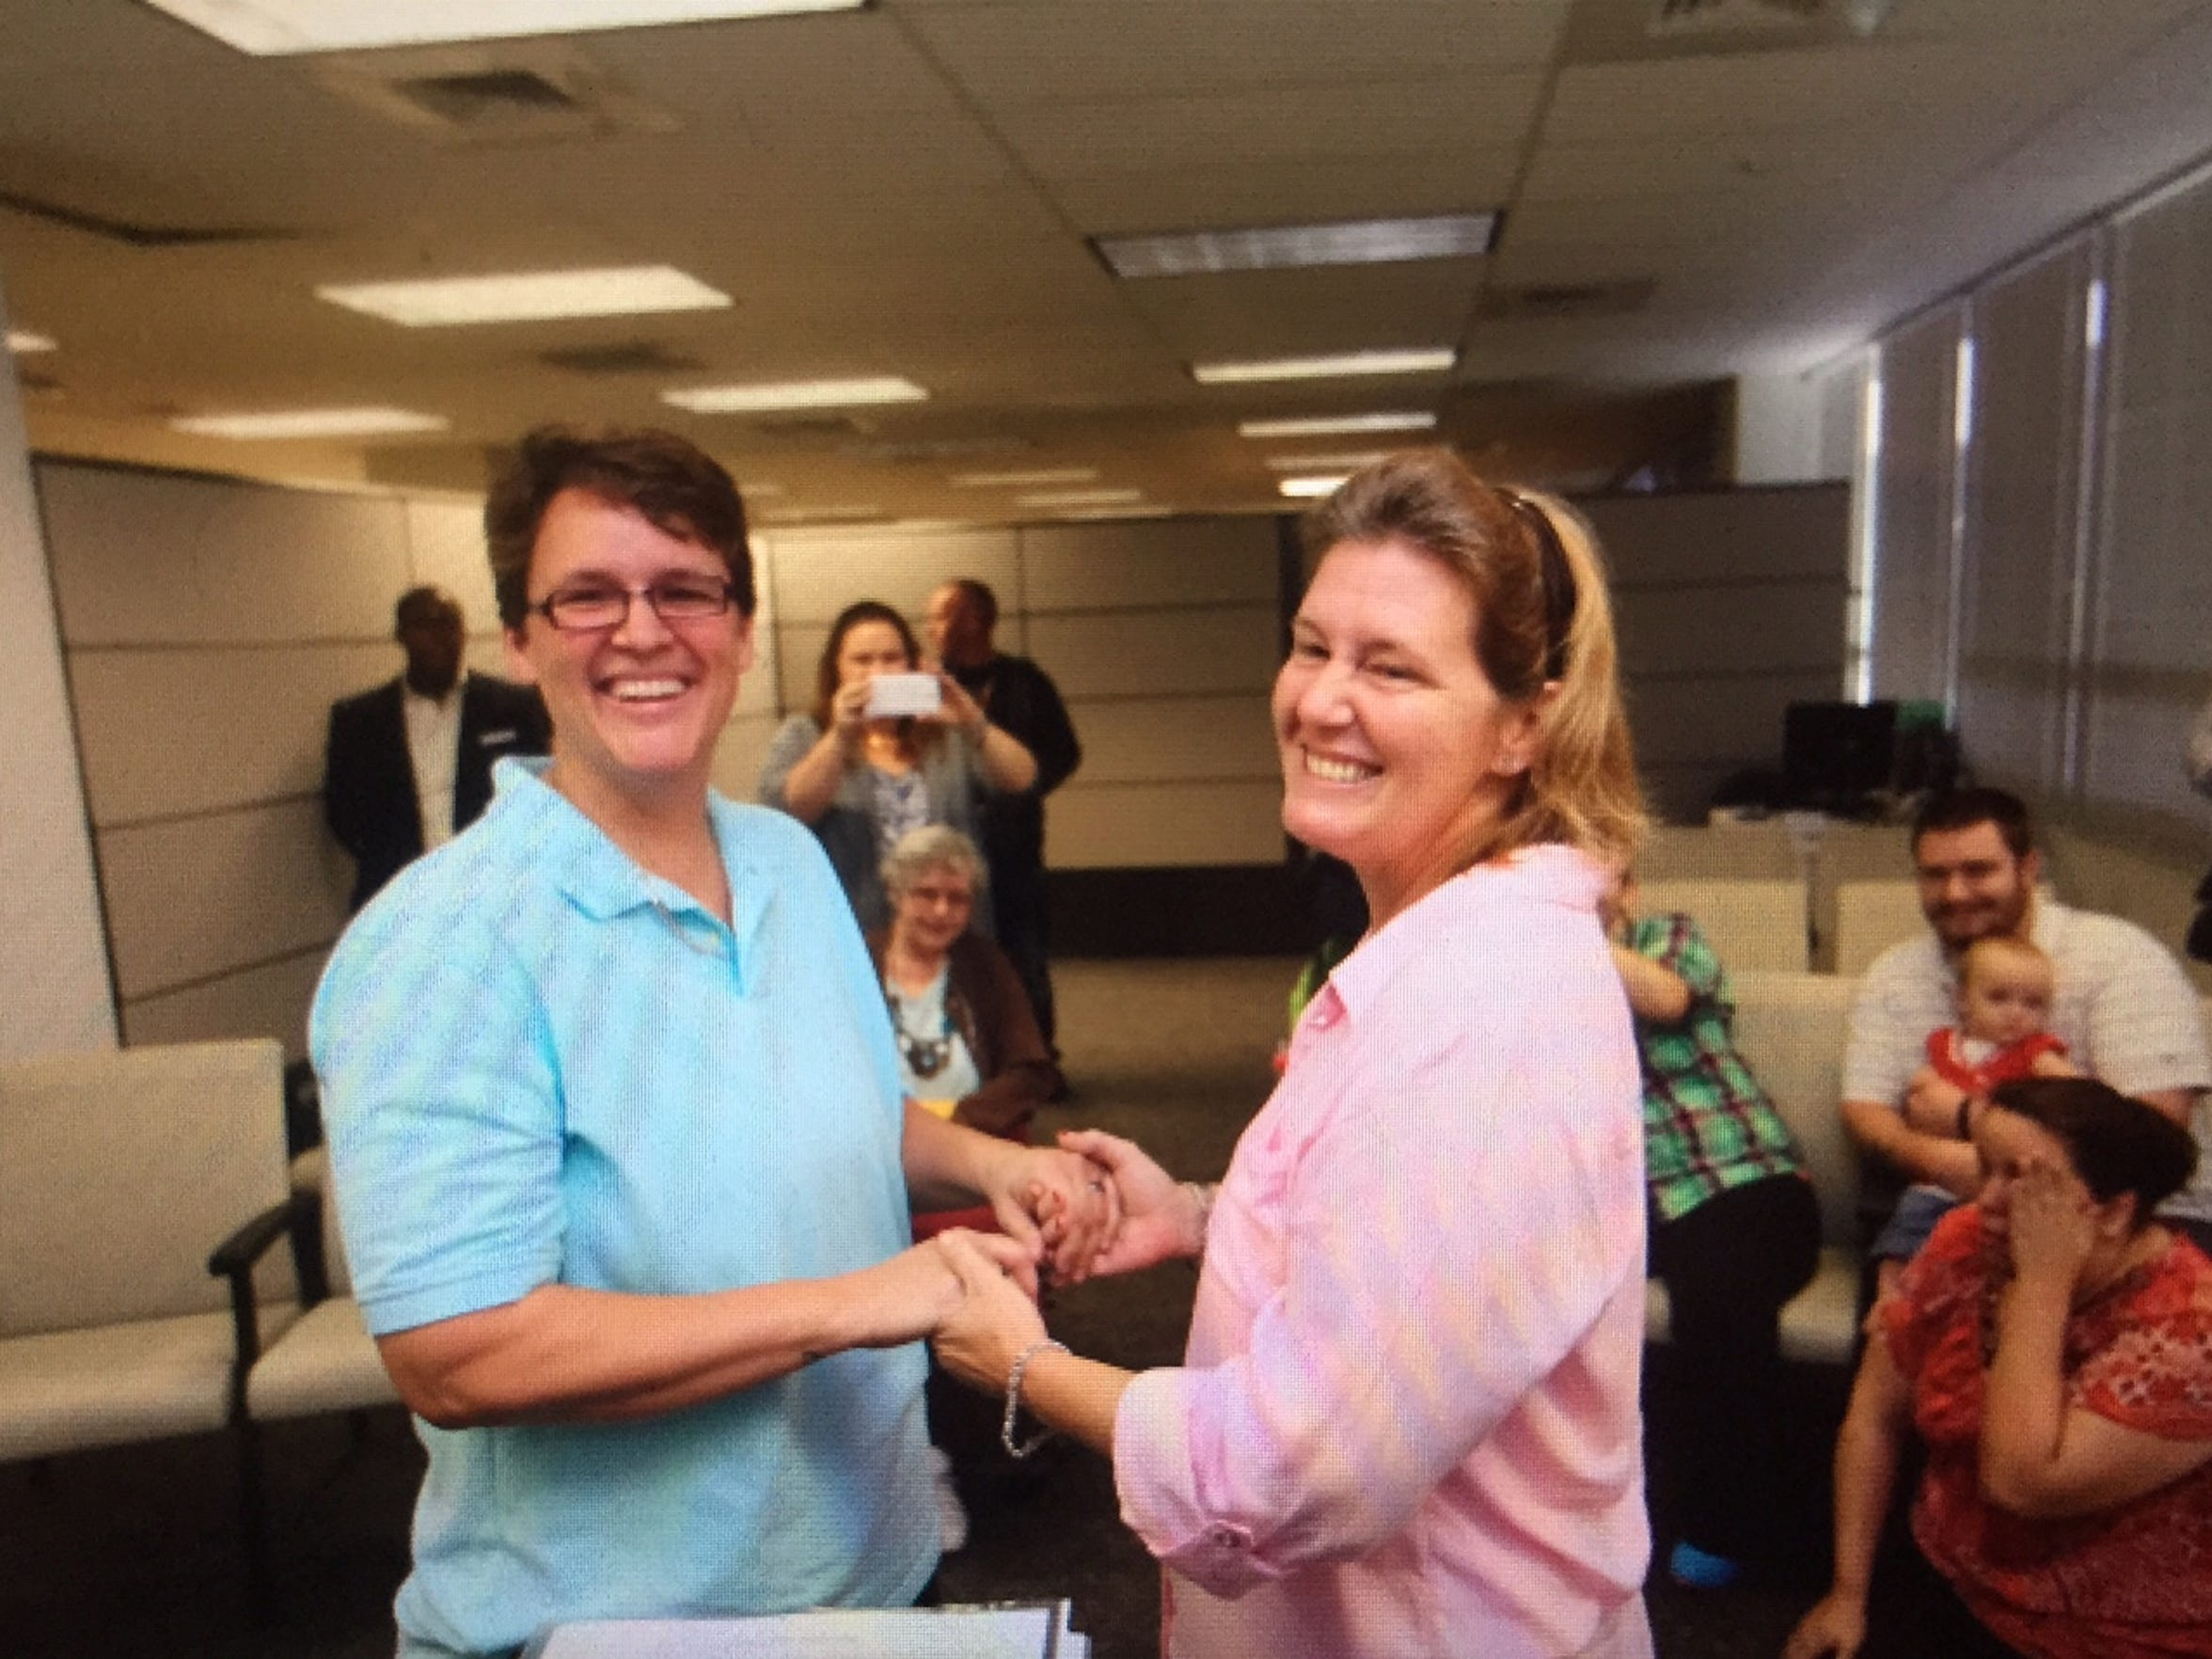 Susan Amann and Lisa Brimhall were the second same-sex couple to get legally married in Lee County.